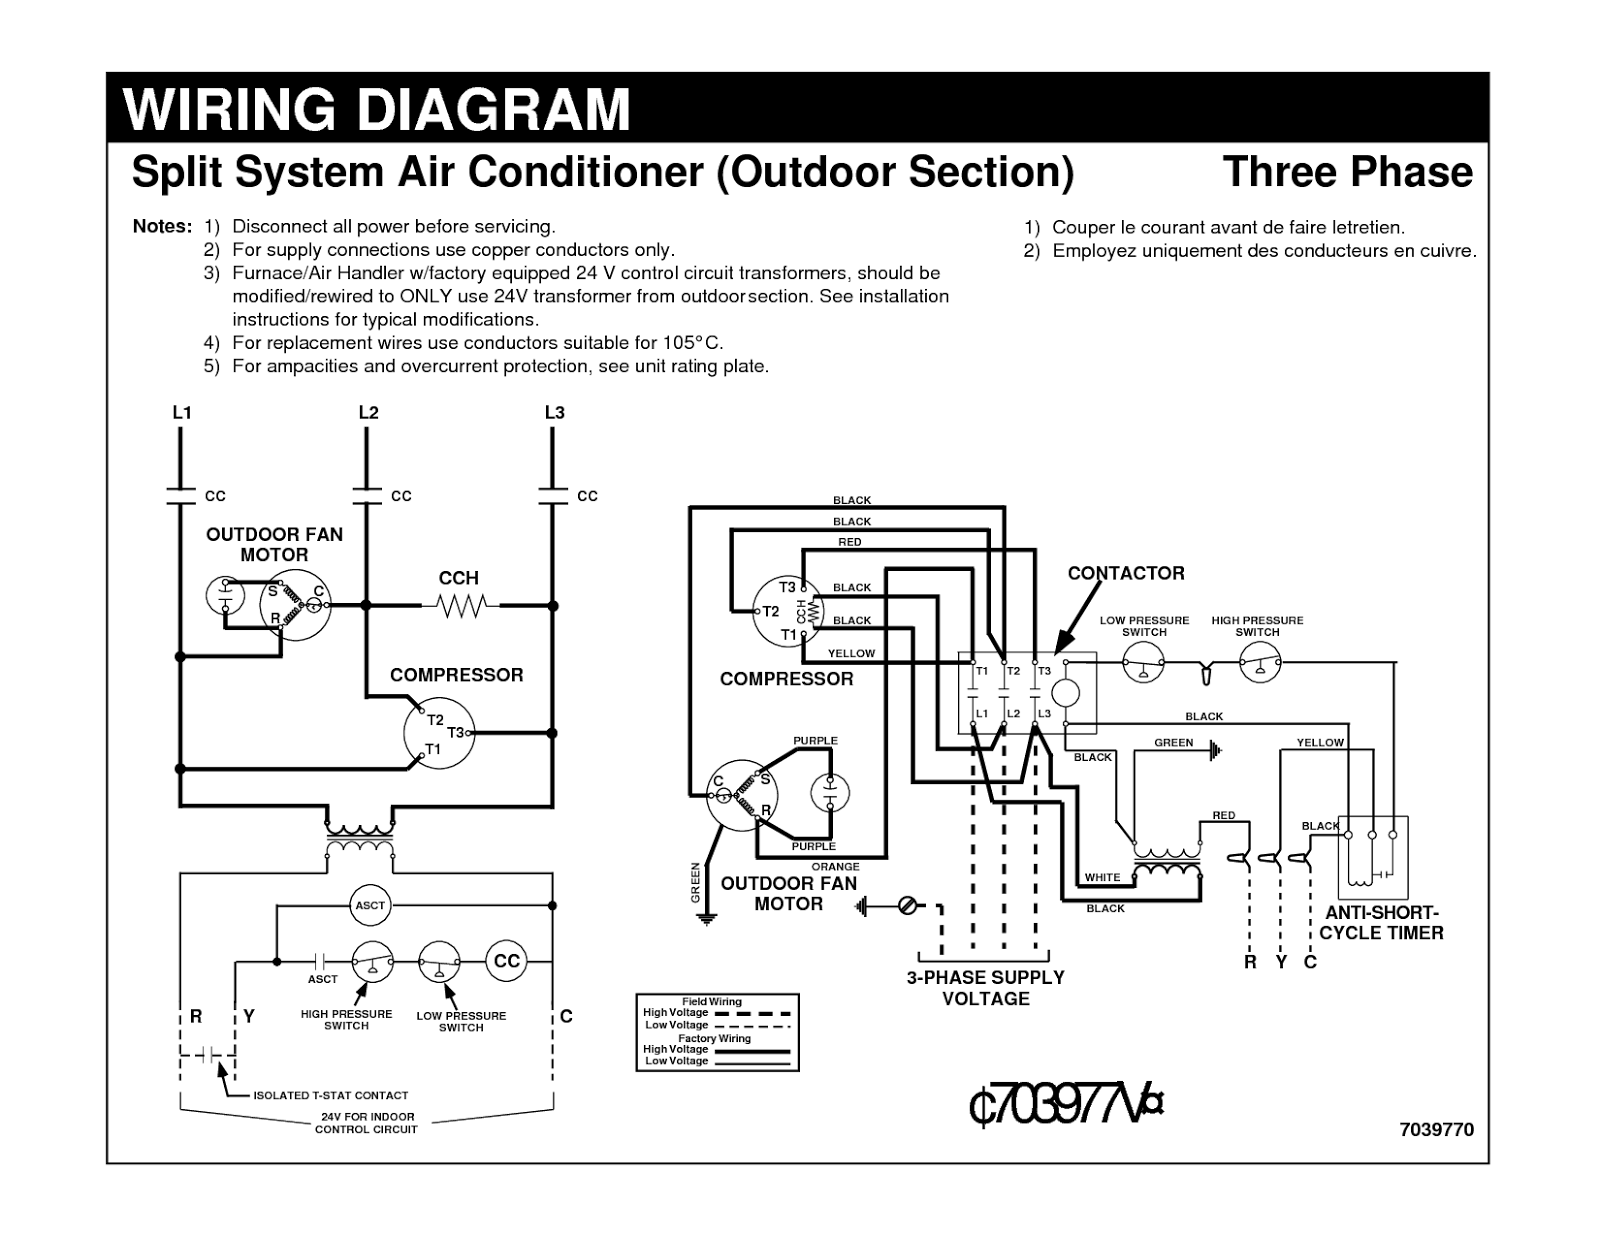 Diagram Of Wiring Electrical Wiring Diagram House Wiring Diagrams